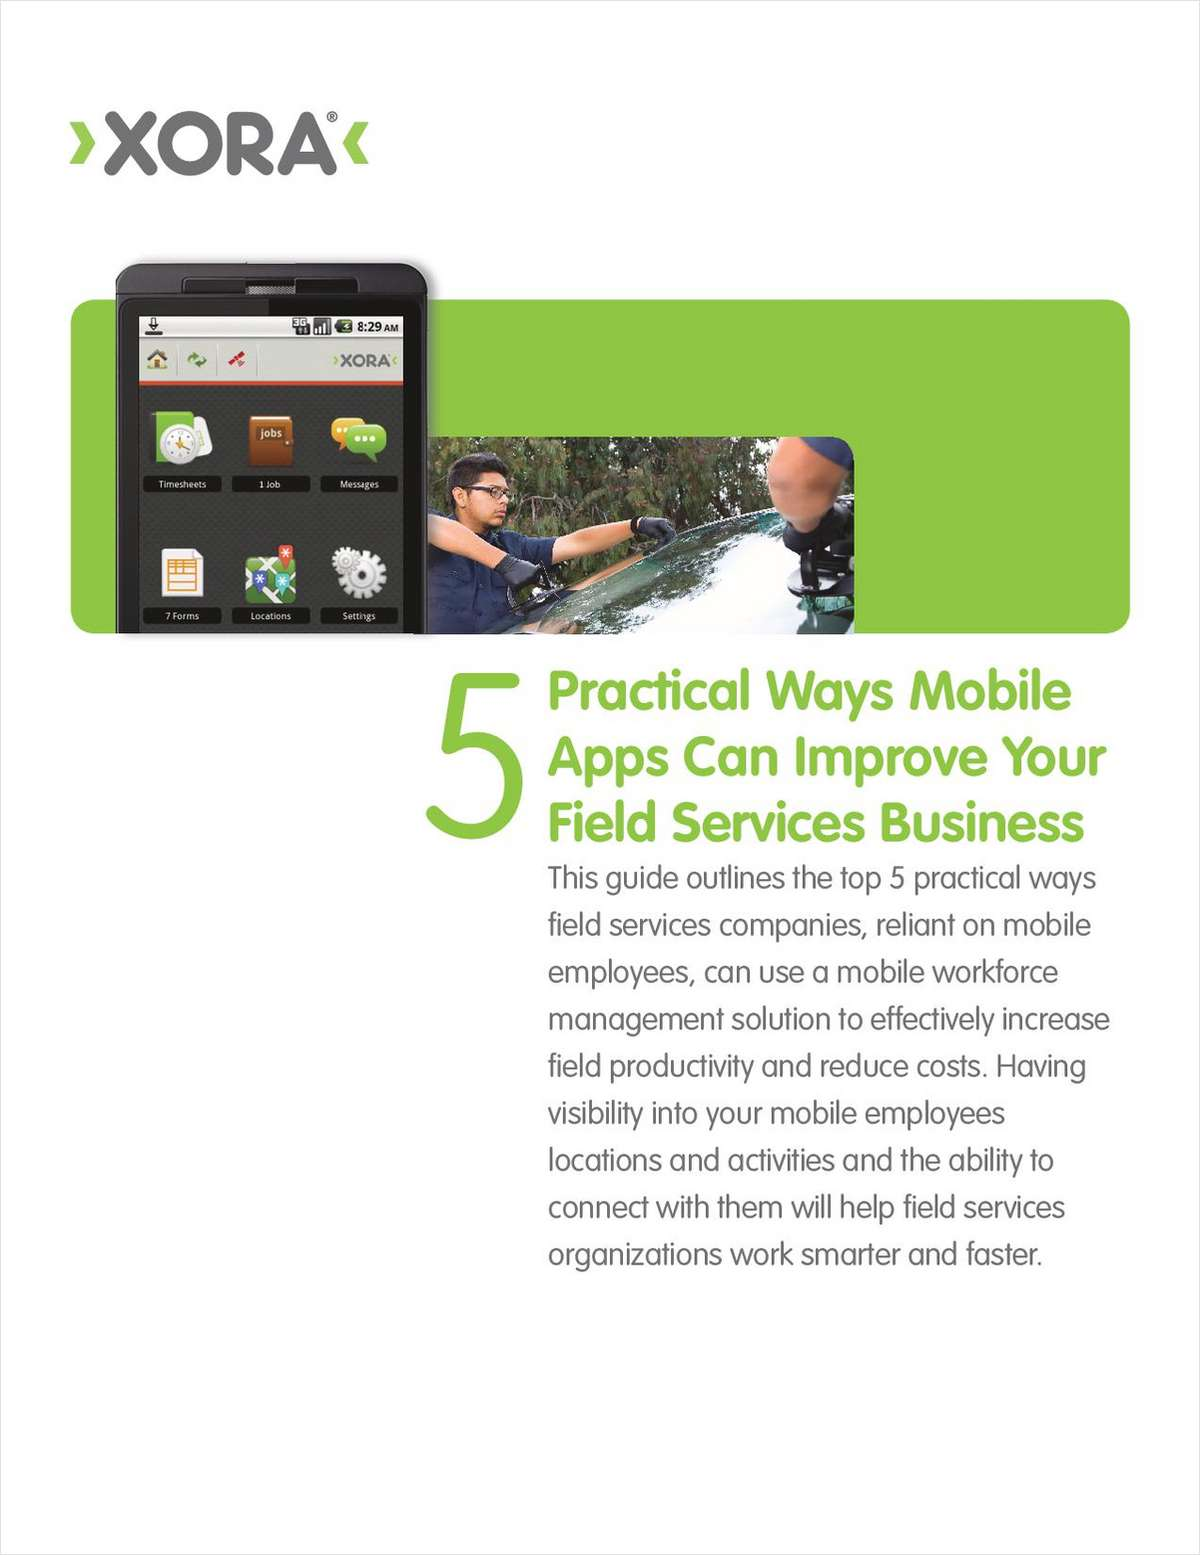 Top 5 Ways Mobile Apps Can Improve Field Services Businesses